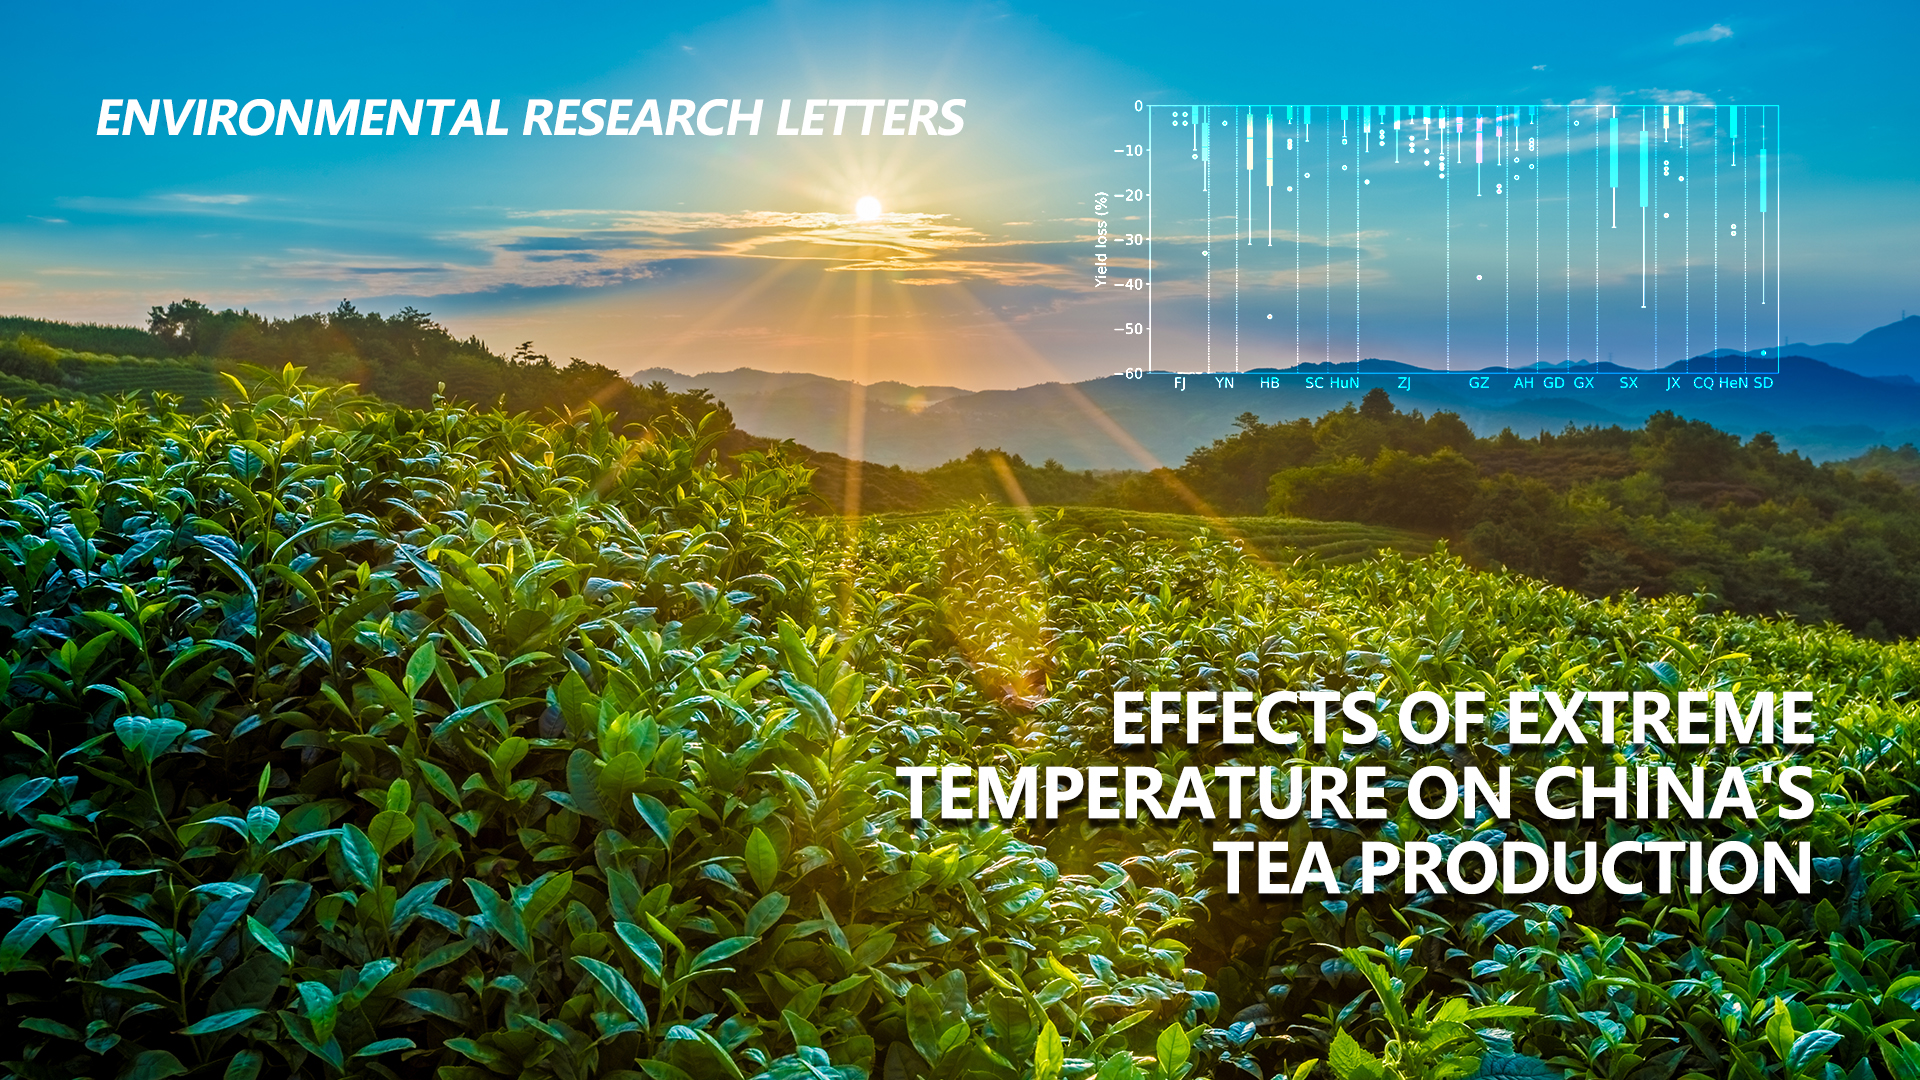 SUSTech's Zheng Chunmiao co-leads international collaborative research that uncovers extreme temperature strikes on China's tea production